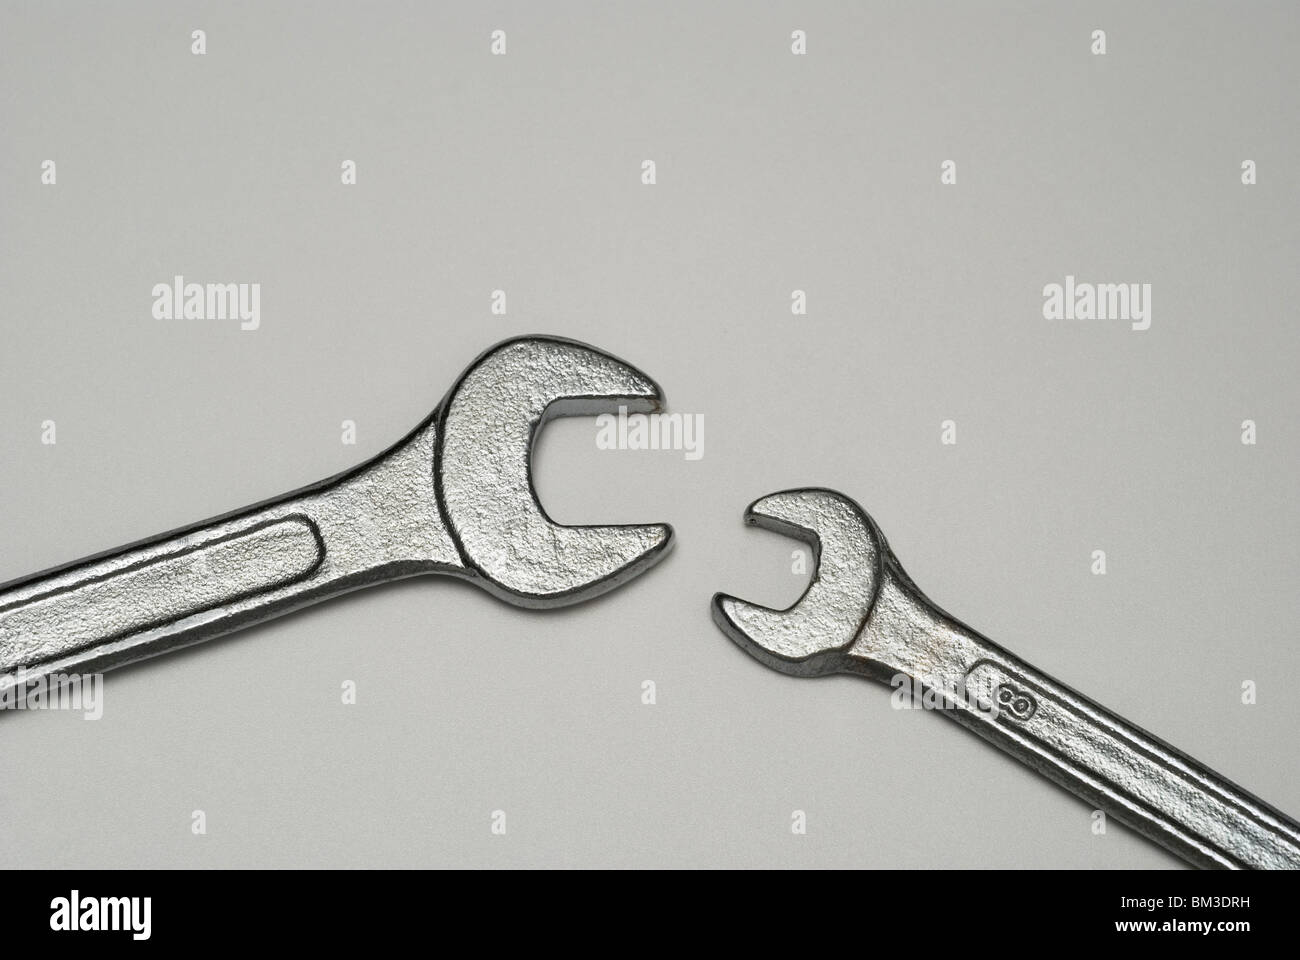 opposite wrenches - Stock Image